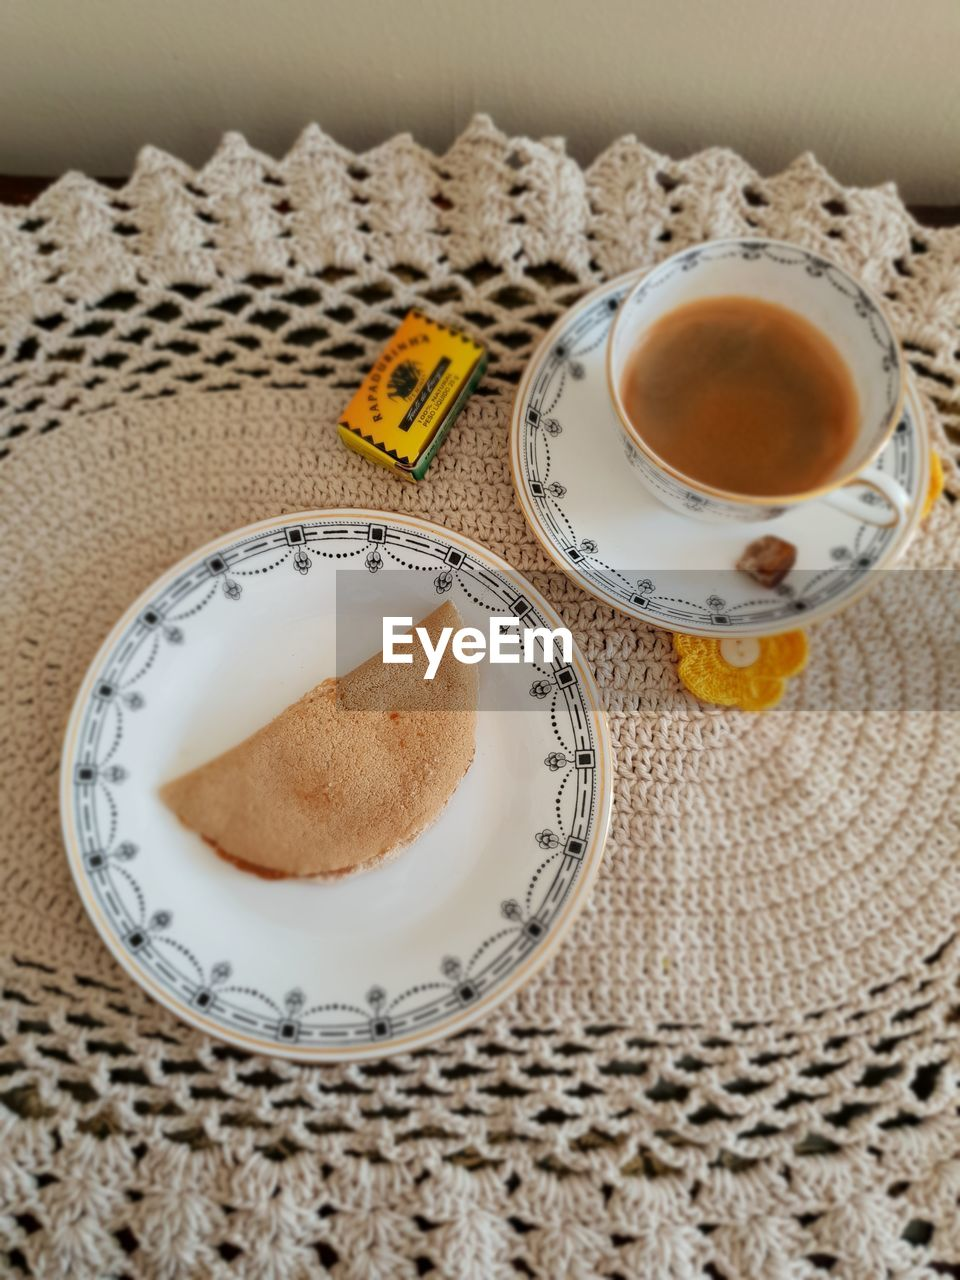 food and drink, drink, refreshment, mug, cup, coffee, indoors, still life, coffee - drink, food, freshness, coffee cup, tea, table, hot drink, close-up, high angle view, no people, tea - hot drink, plate, crockery, tea cup, non-alcoholic beverage, breakfast, place mat